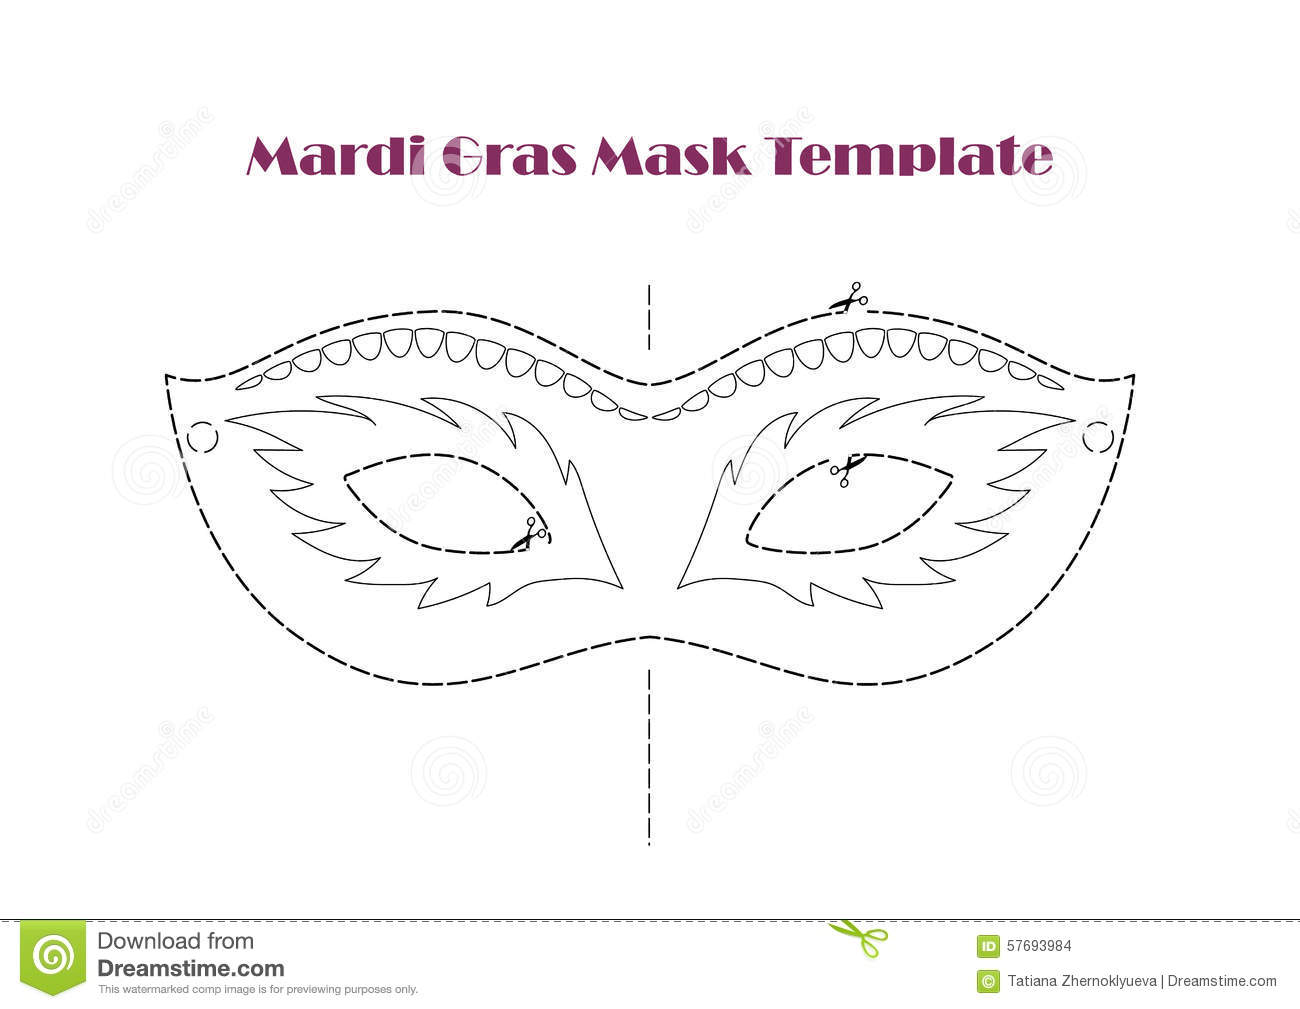 Carnival prop mask template printable line vector stock vector carnival prop mask template printable line vector pronofoot35fo Choice Image